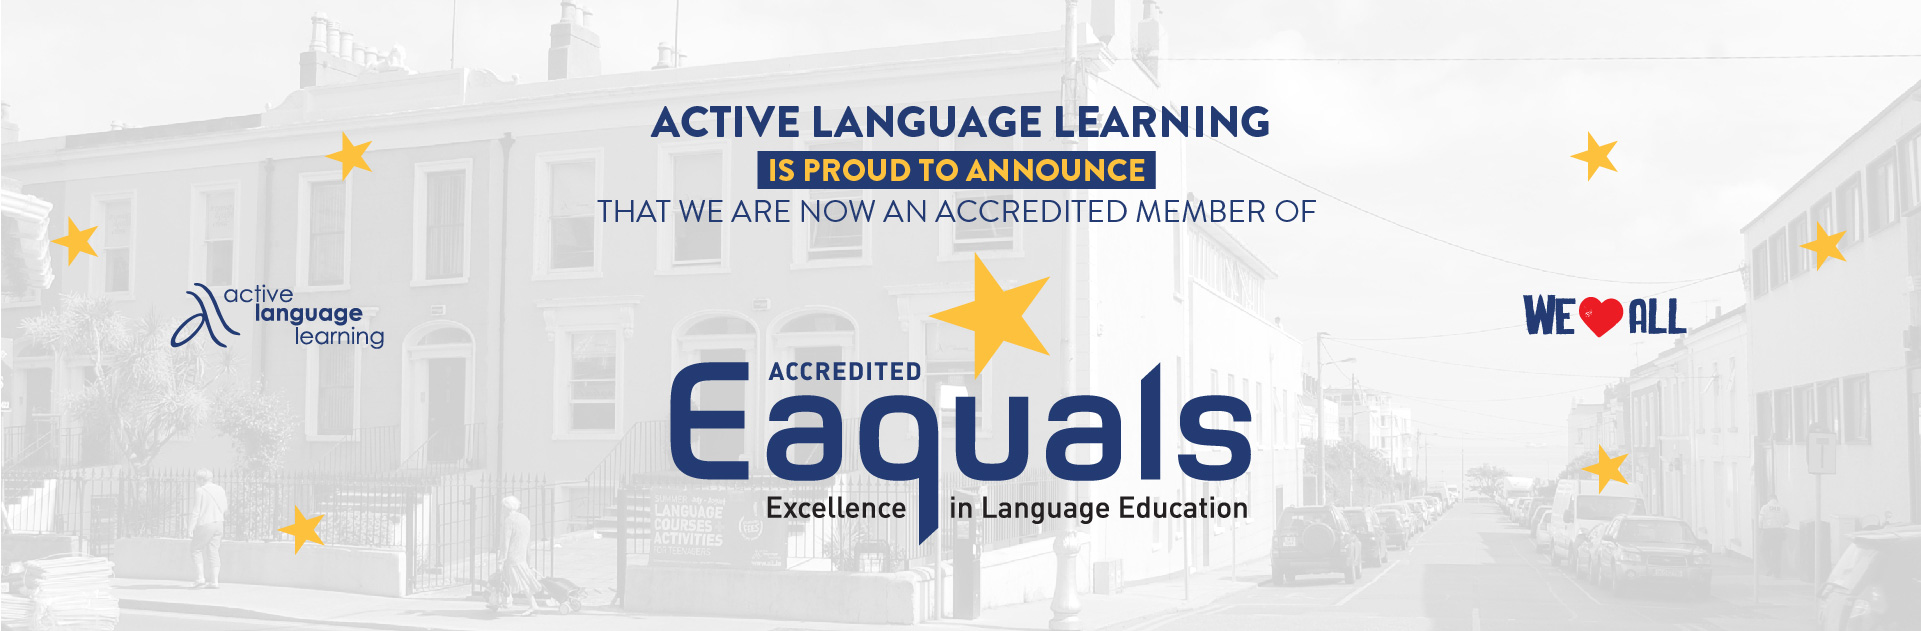 Eaquals-Excellence-in-Language-Education